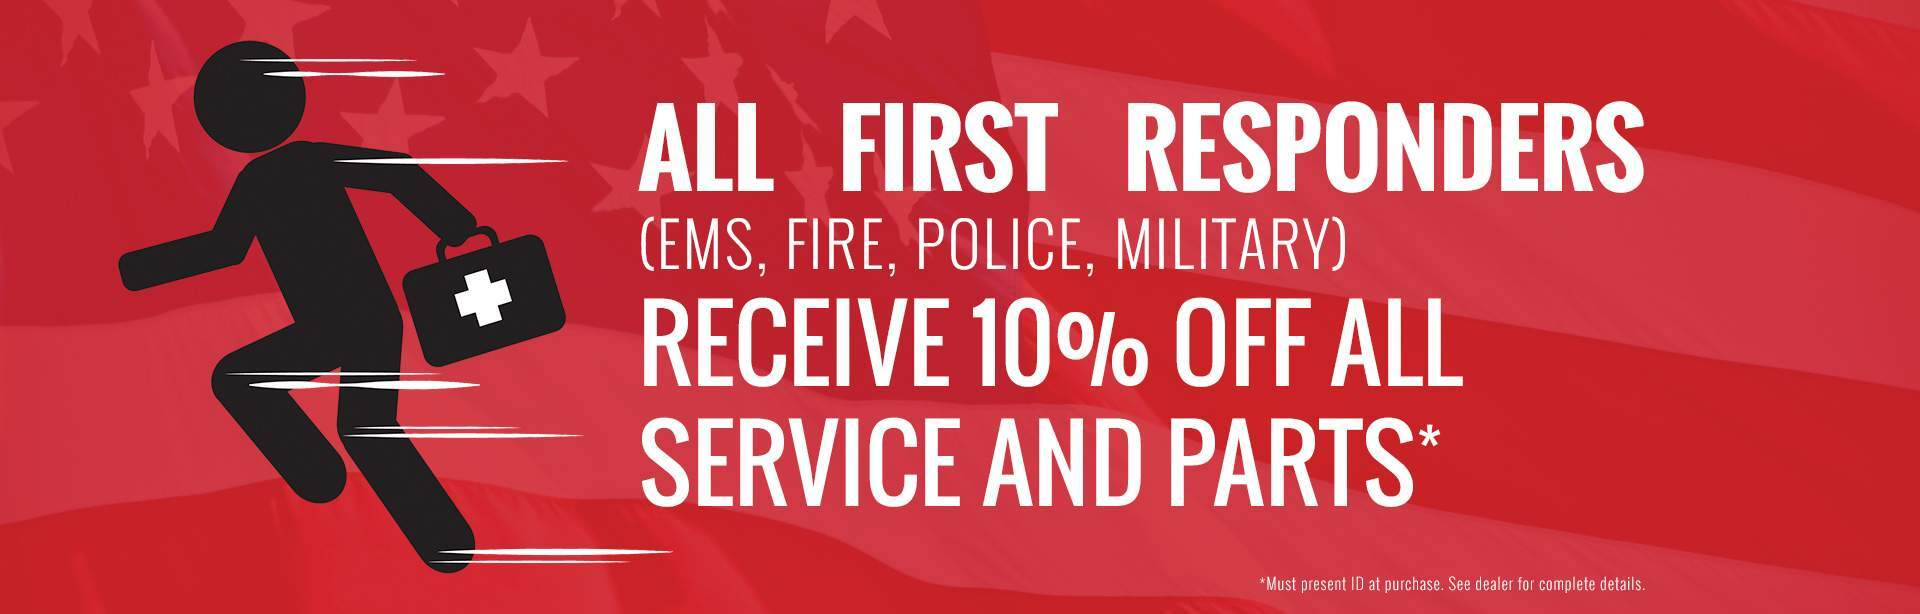 All First Responders